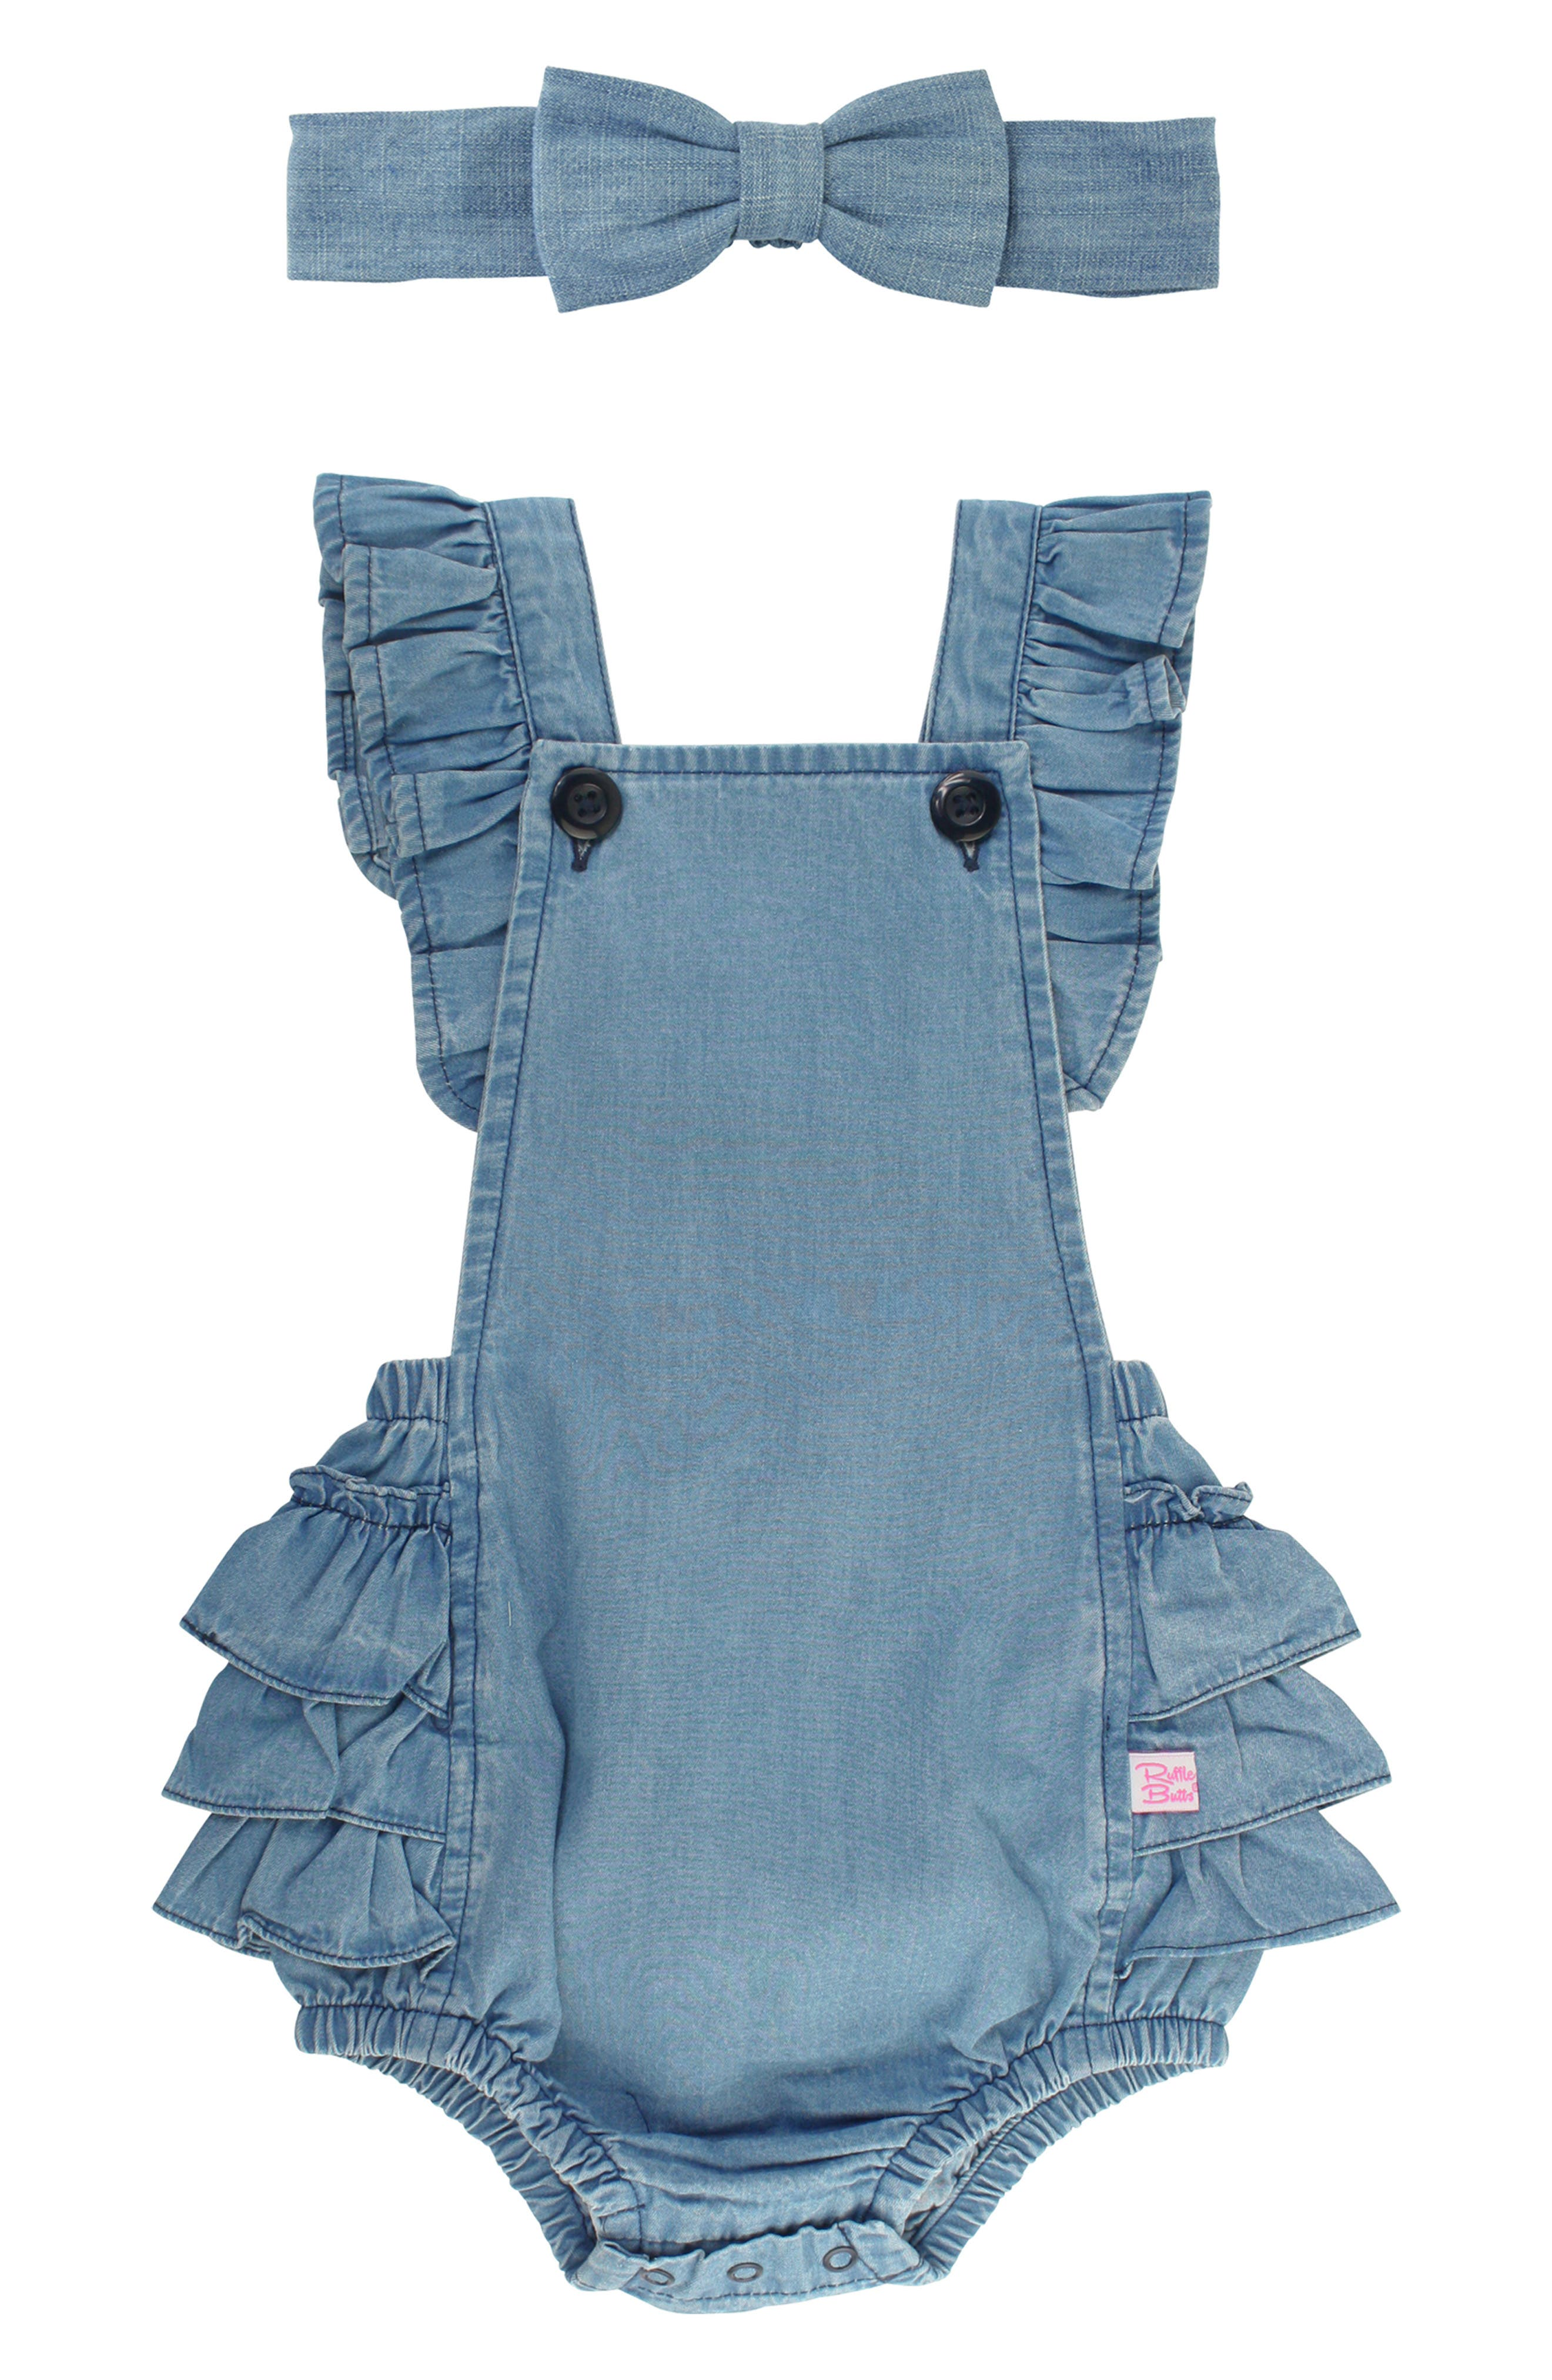 Yvowming Newborn Baby Girl Romper Bodysuit Ruffle One Piece Jumpsuits Baby Summer Outfits Clothes